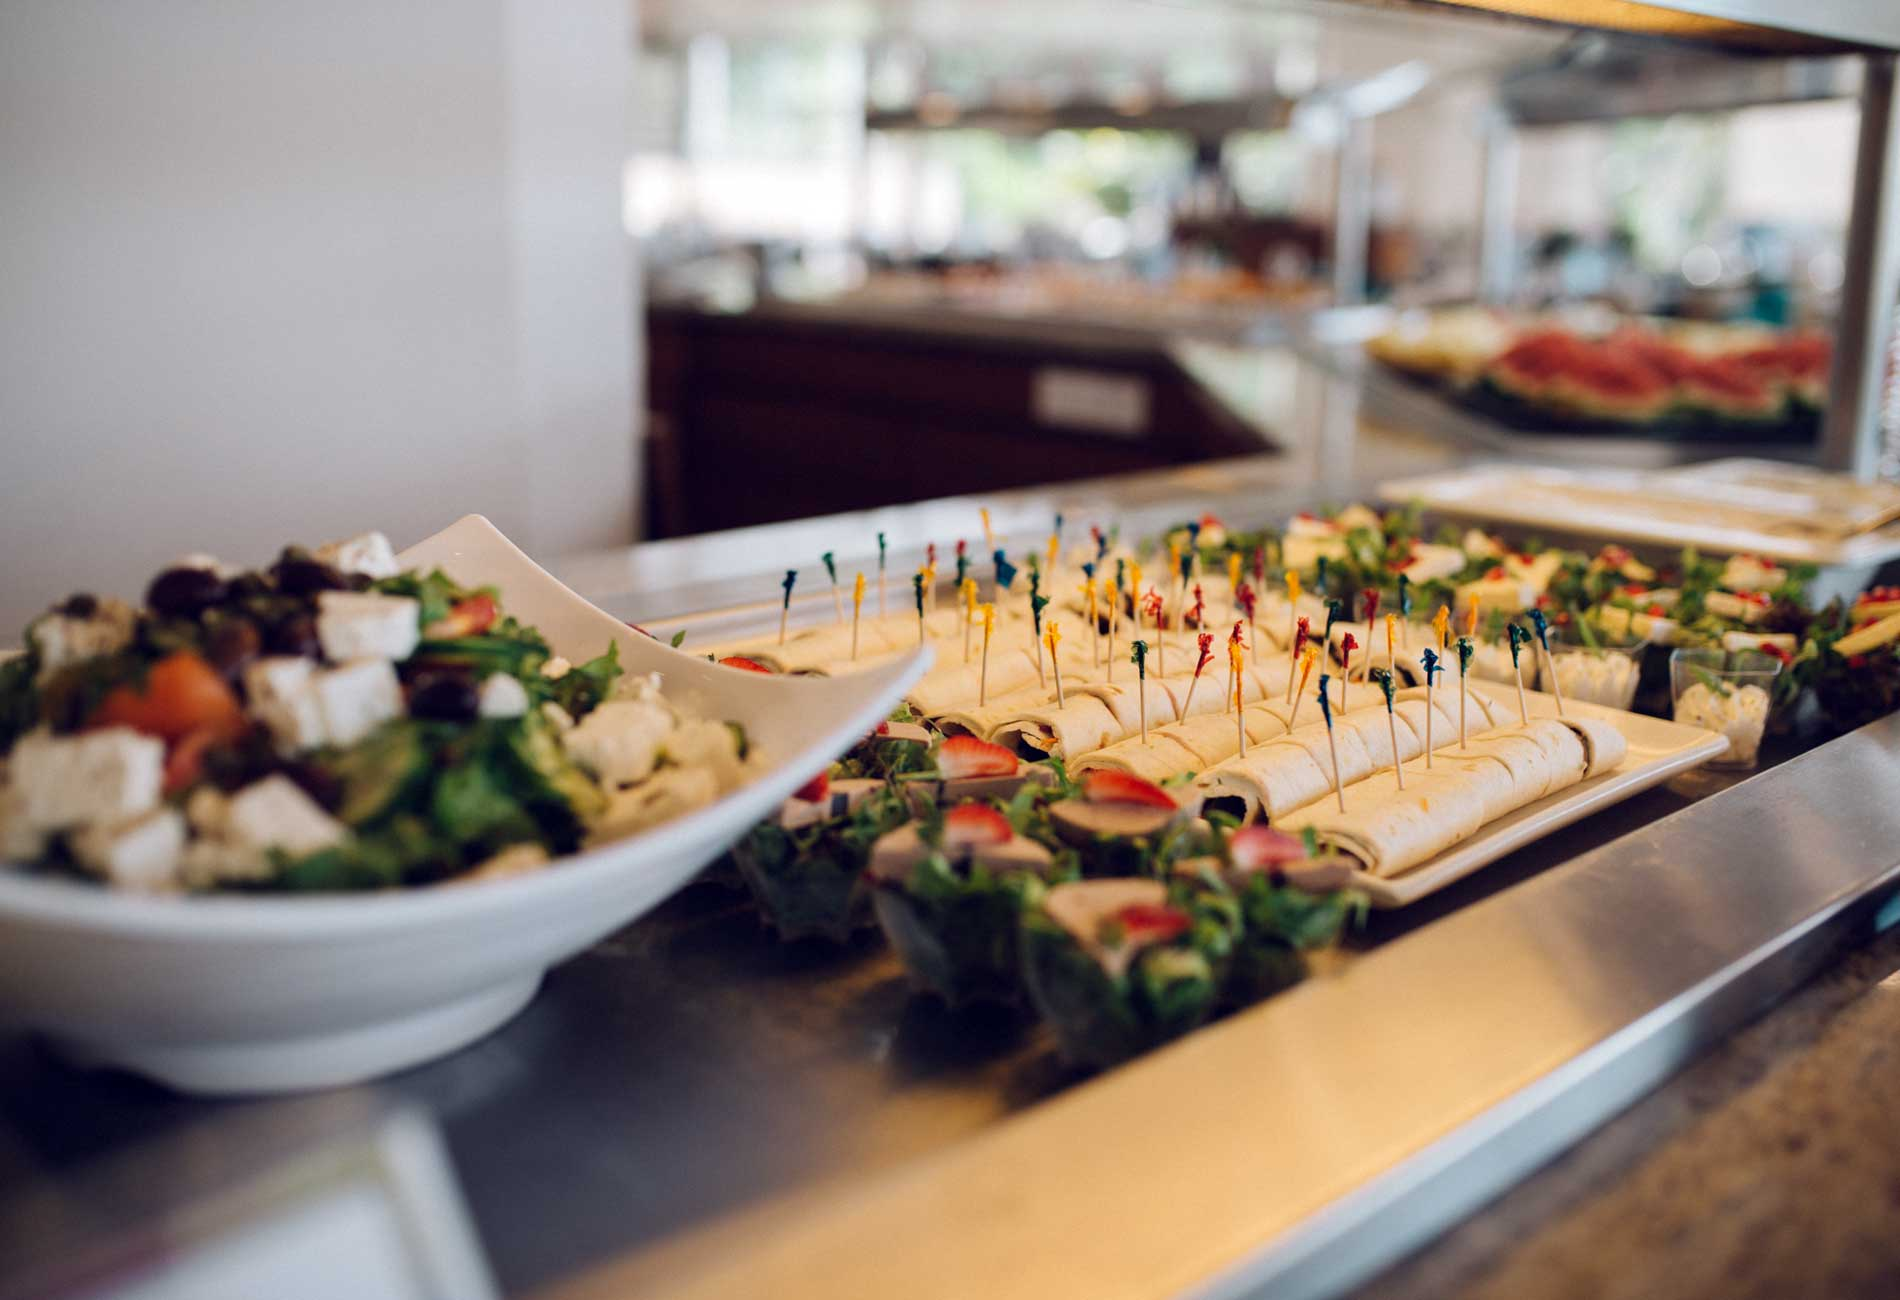 Octagon Restaurant - Mediterranean breakfast & lunch buffet